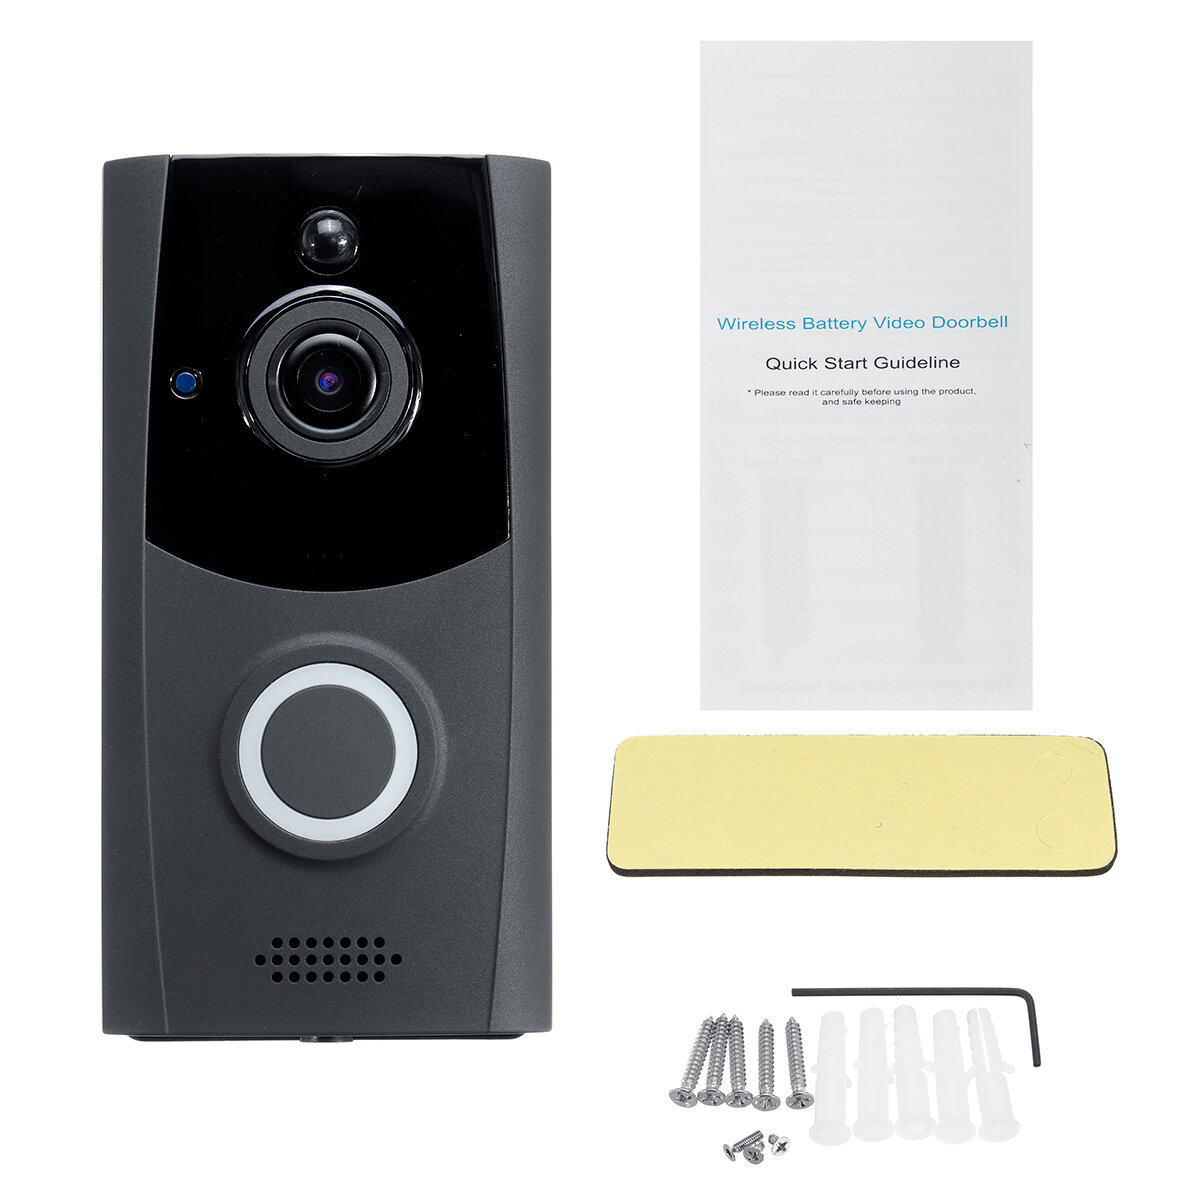 2.8 inch LCD Digital Peephole Viewer Security Video Doorbell Camera Monitor Night Vision - 1